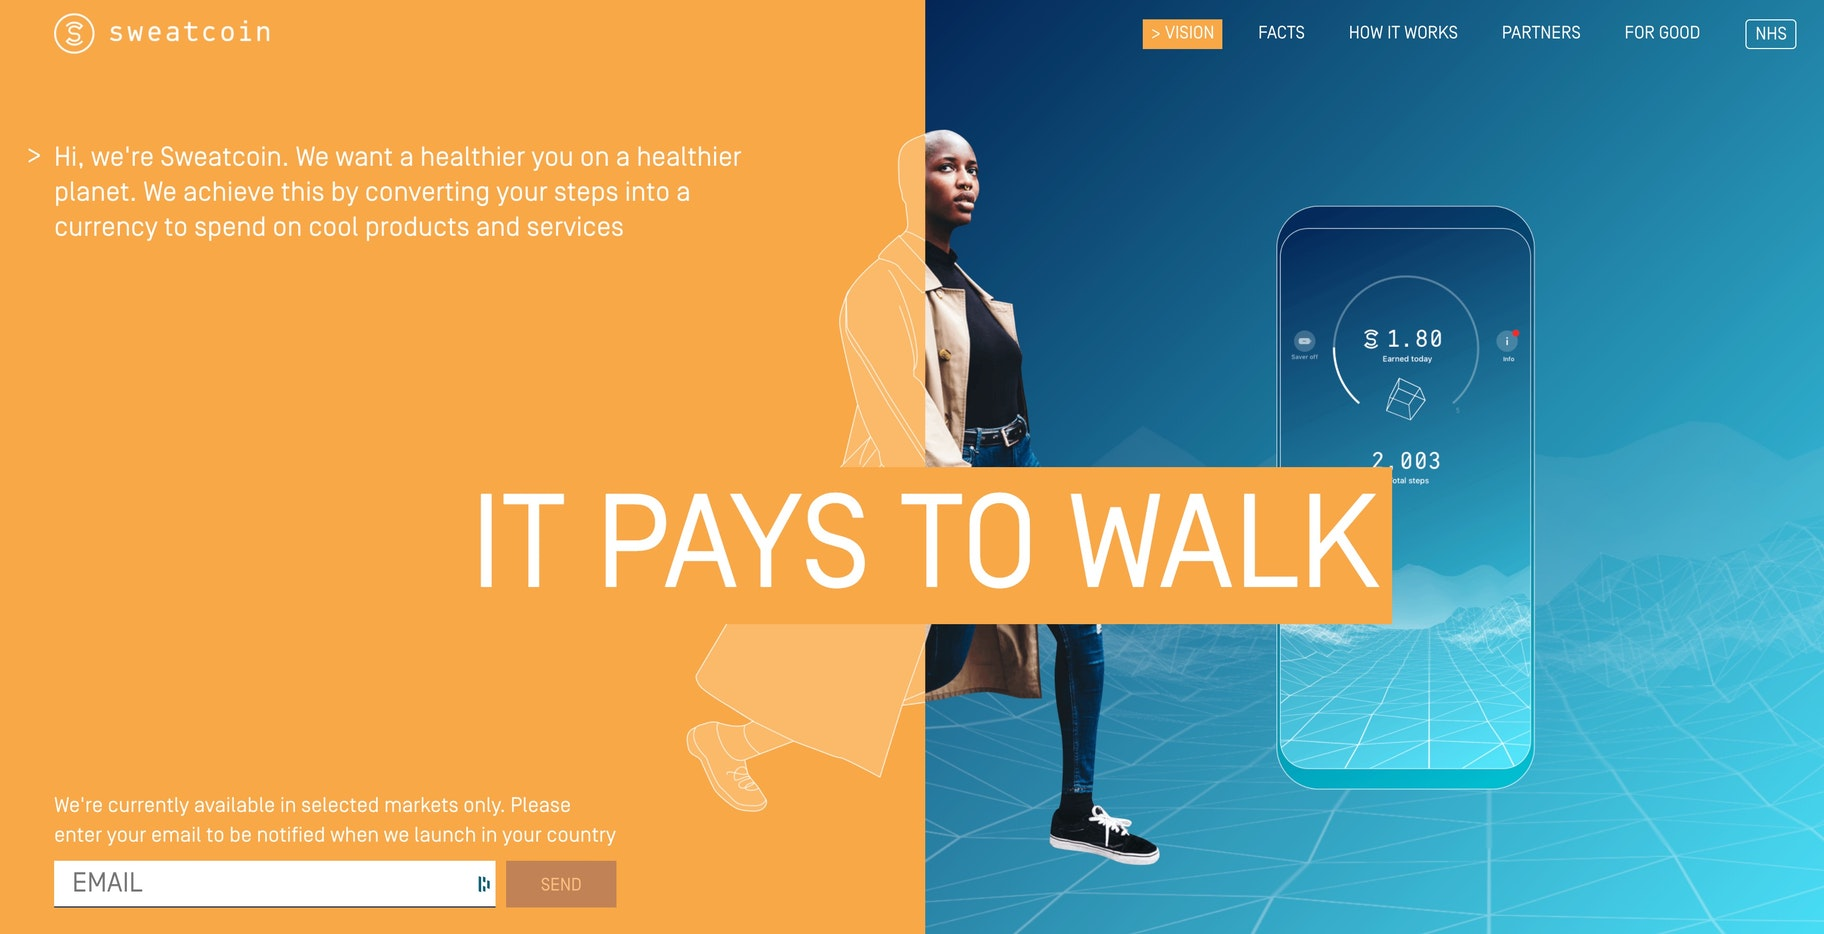 Get paid for walking: Sweatcoin